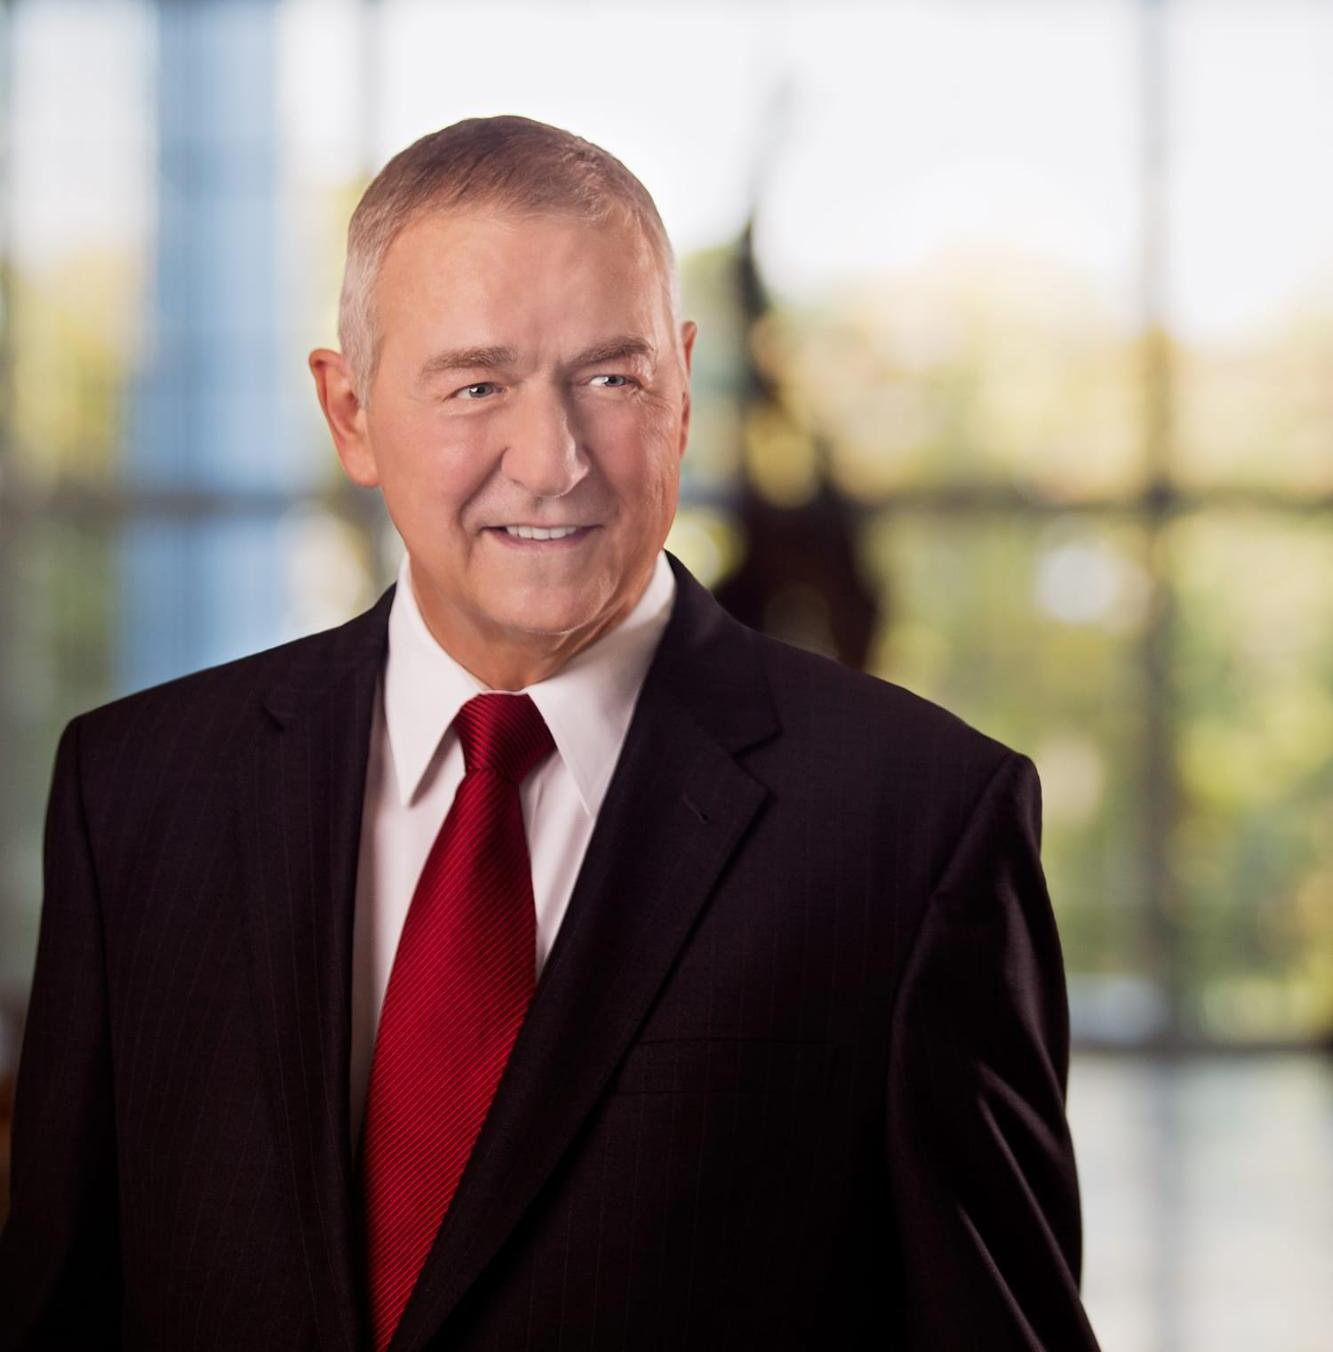 Jim Goodnight, Ceo di Sas